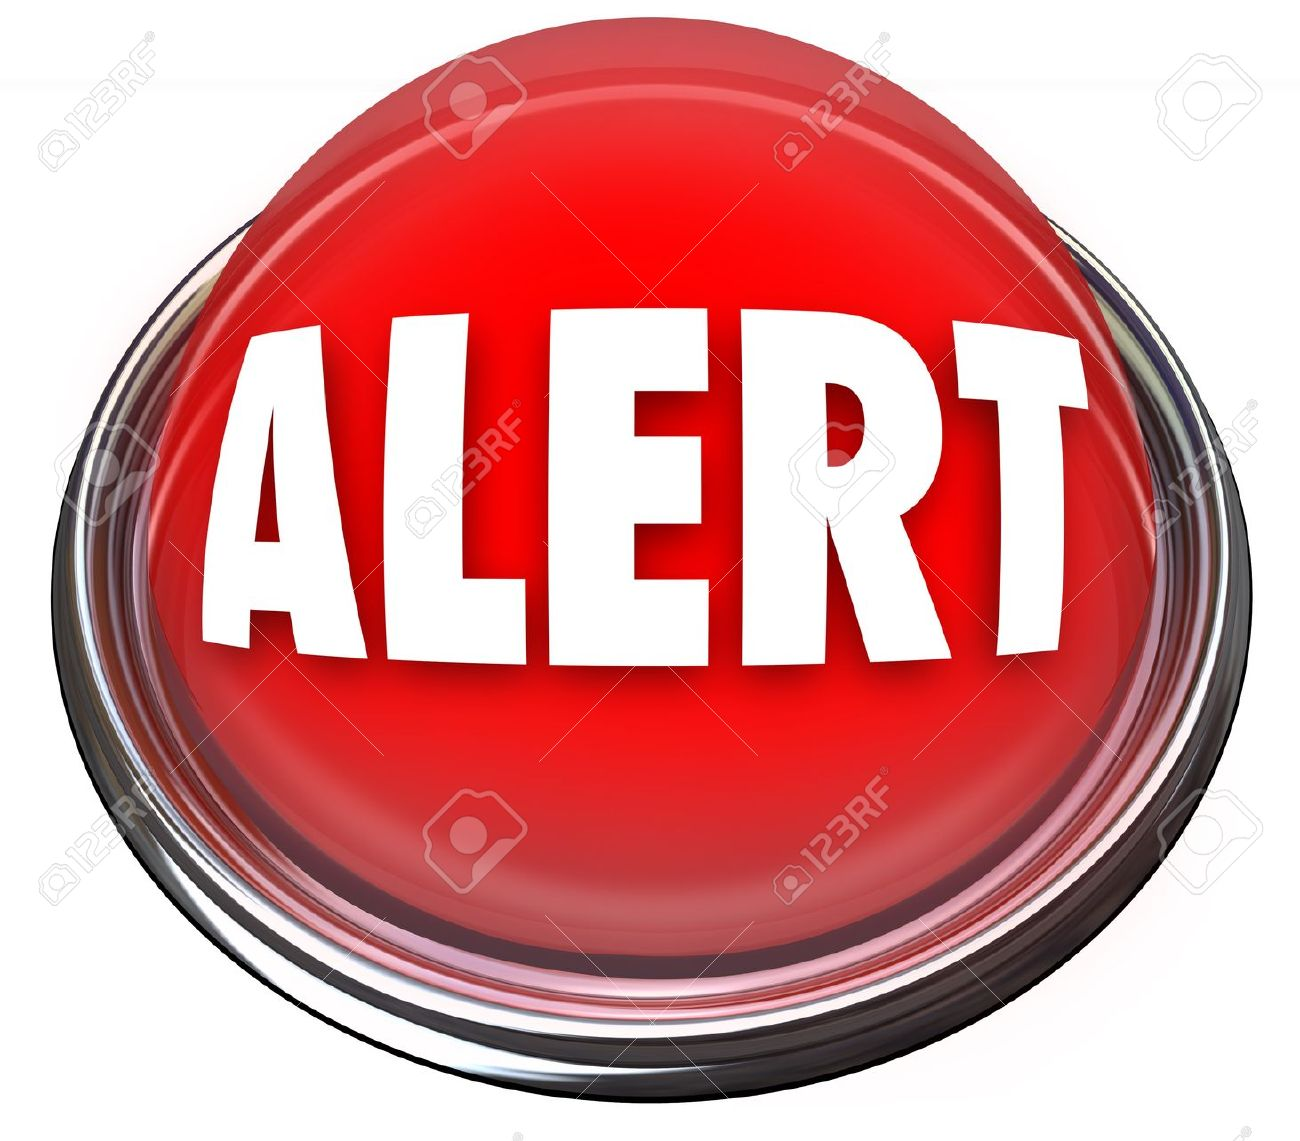 A Round Red Button Or Light With The Word Alert Stock Photo.